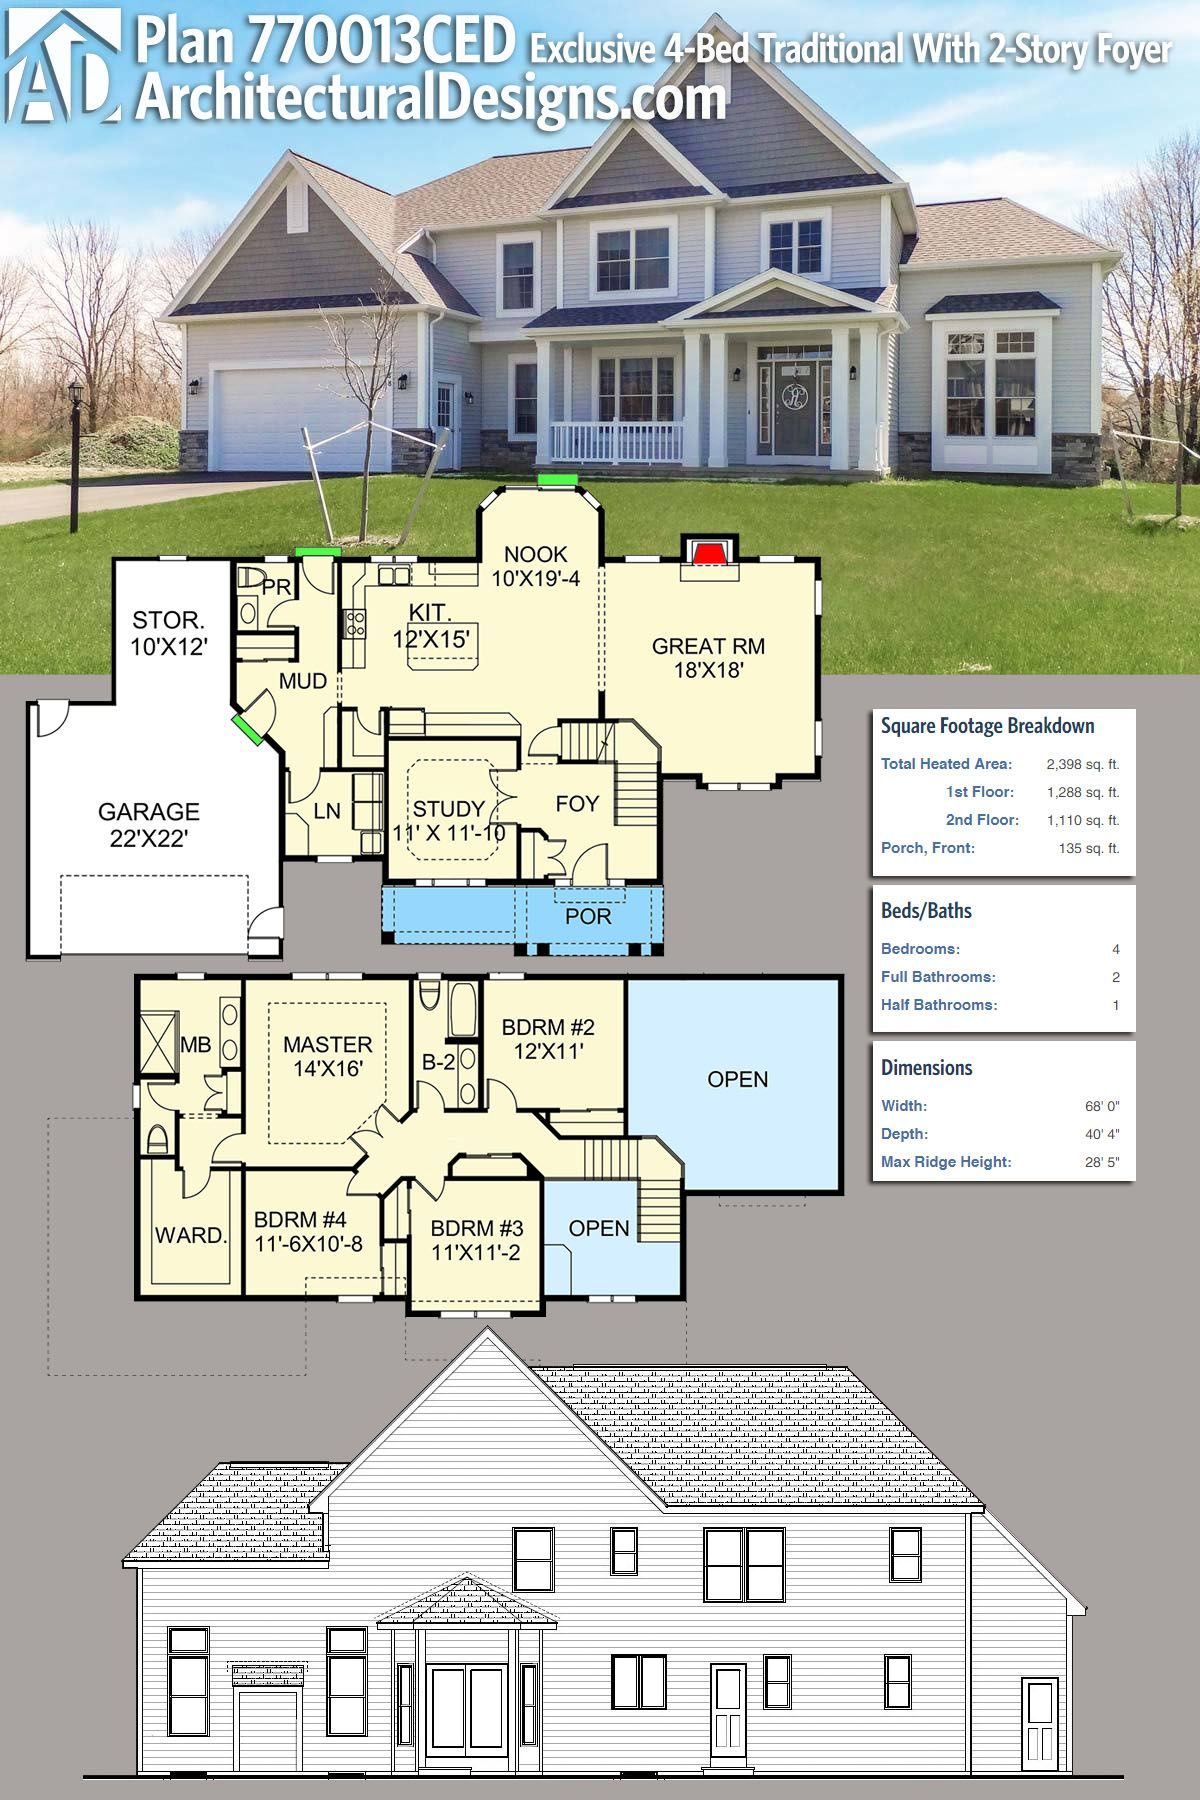 Plan 770013ced Exclusive Traditional With Two Story Foyer And Great Room House Plans Dream House Plans House Blueprints